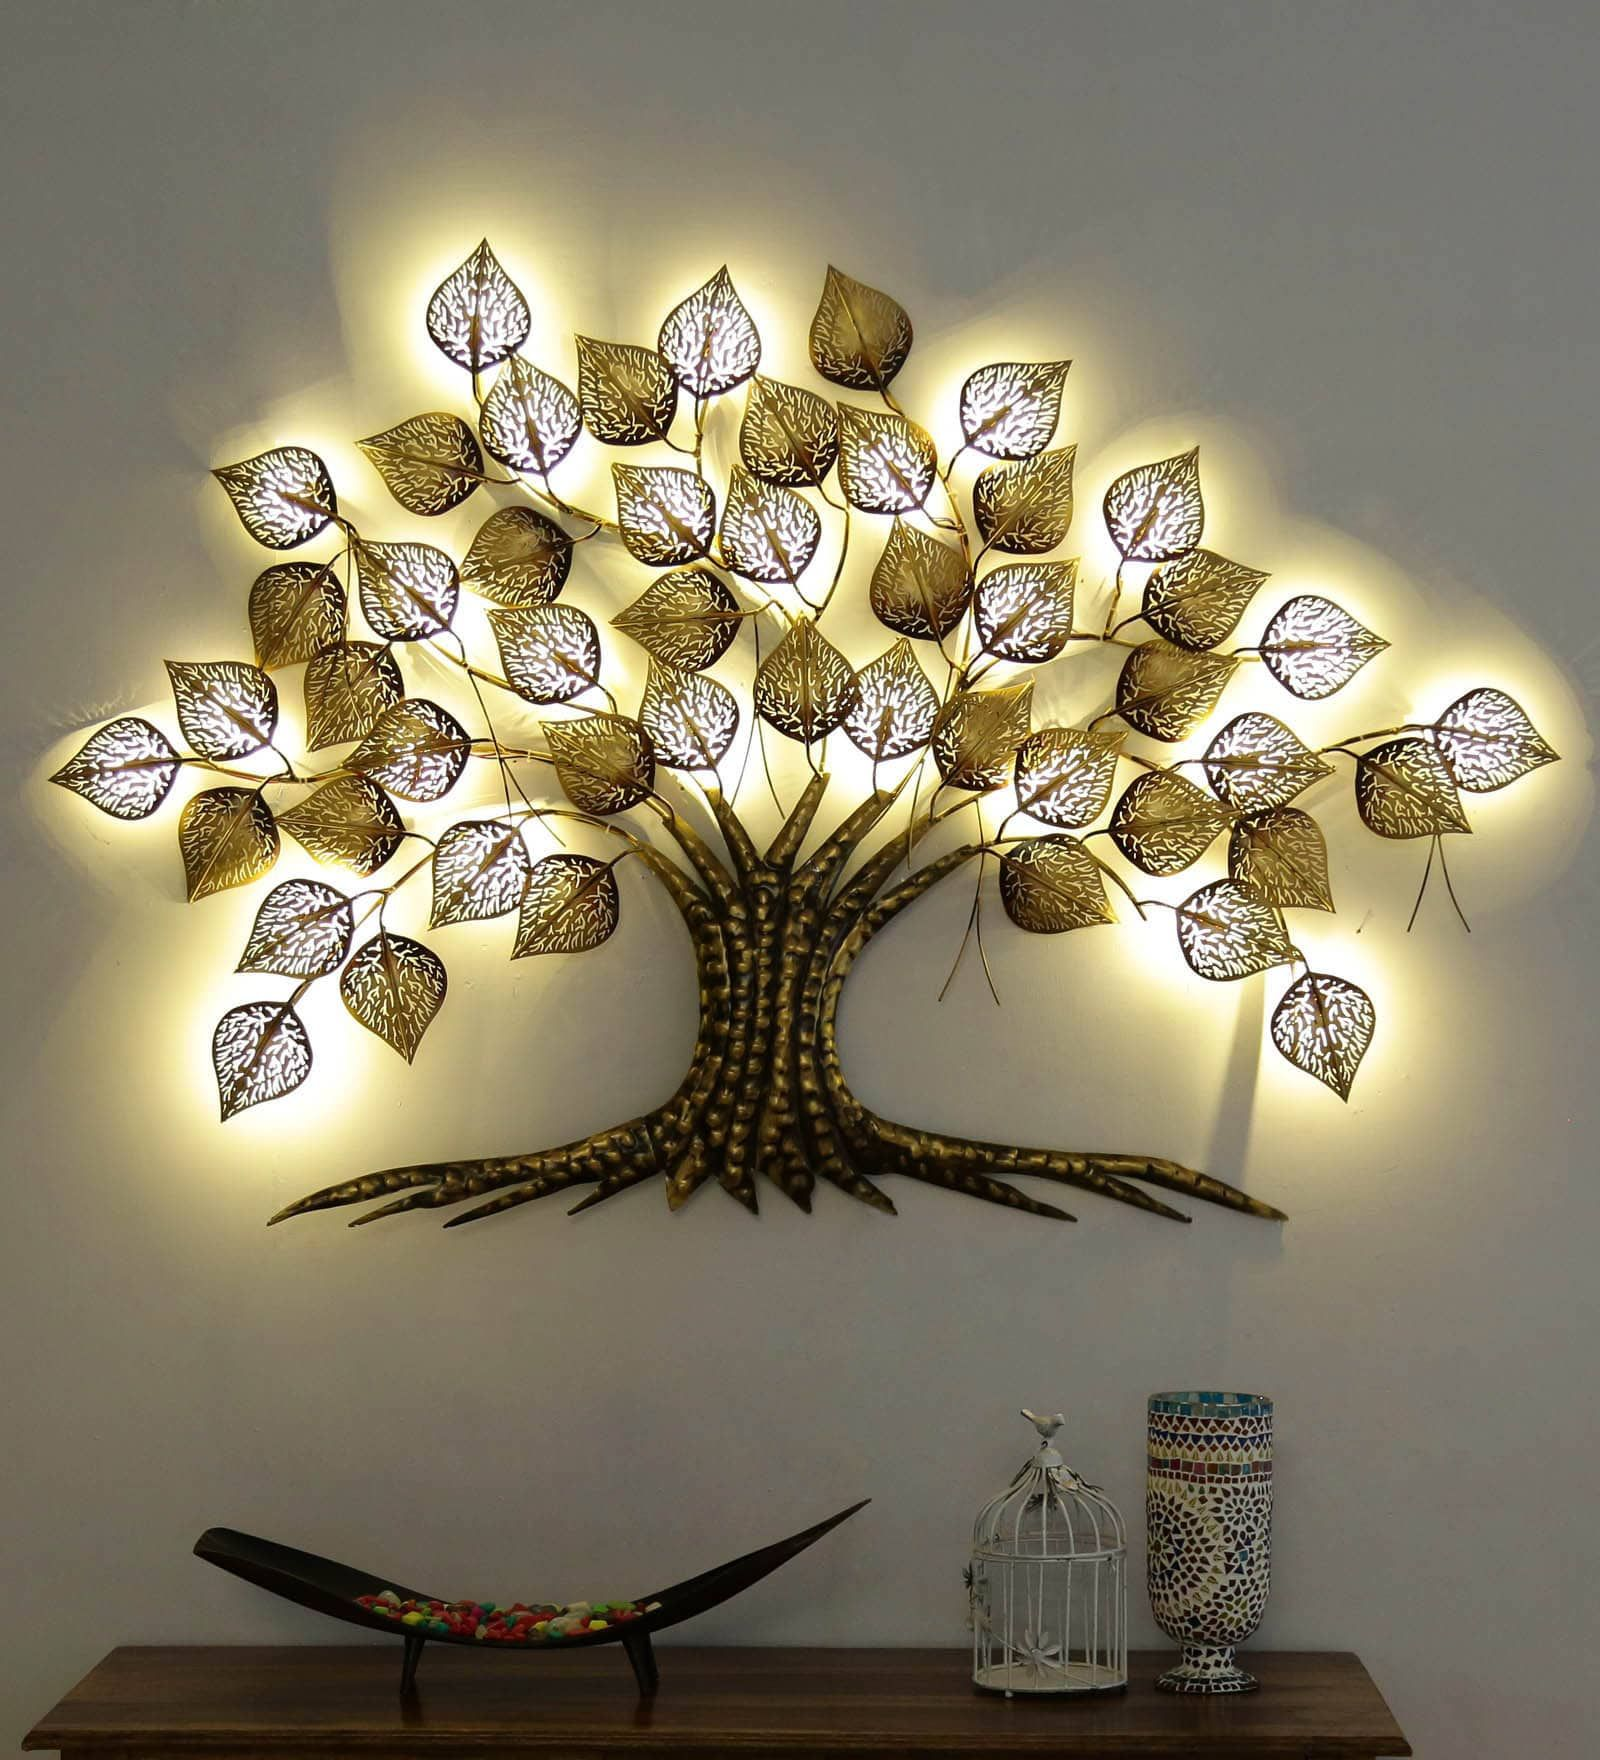 Big Metal Tree With Led Light Wall Hanging Decor Led Wall Art Metal Tree Wall Art Metal Tree